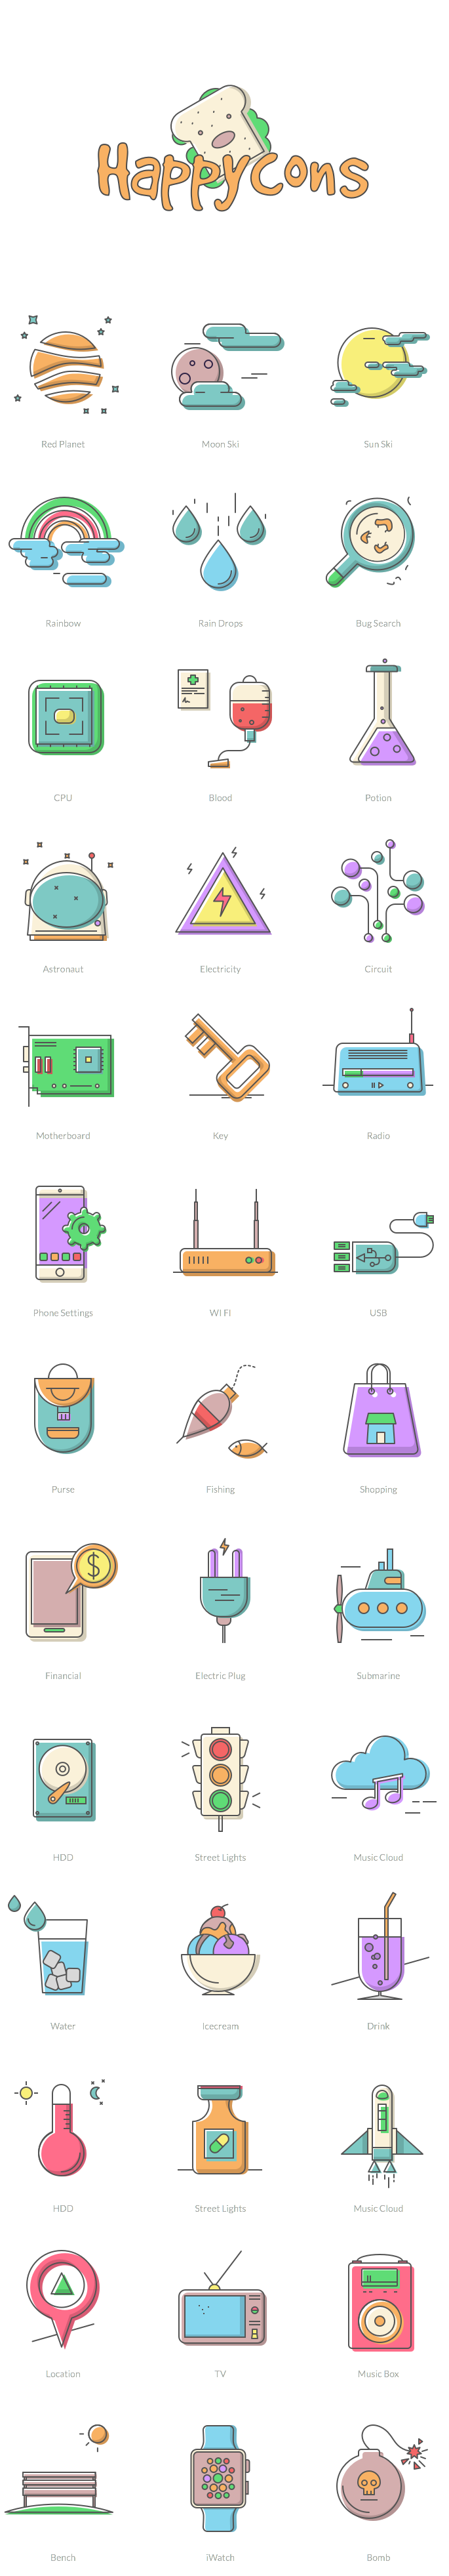 Free Download Happycons 40 Happy And Unique Icons Ai Sketch Png Svg Eps Icon Design Icon Icon Illustration